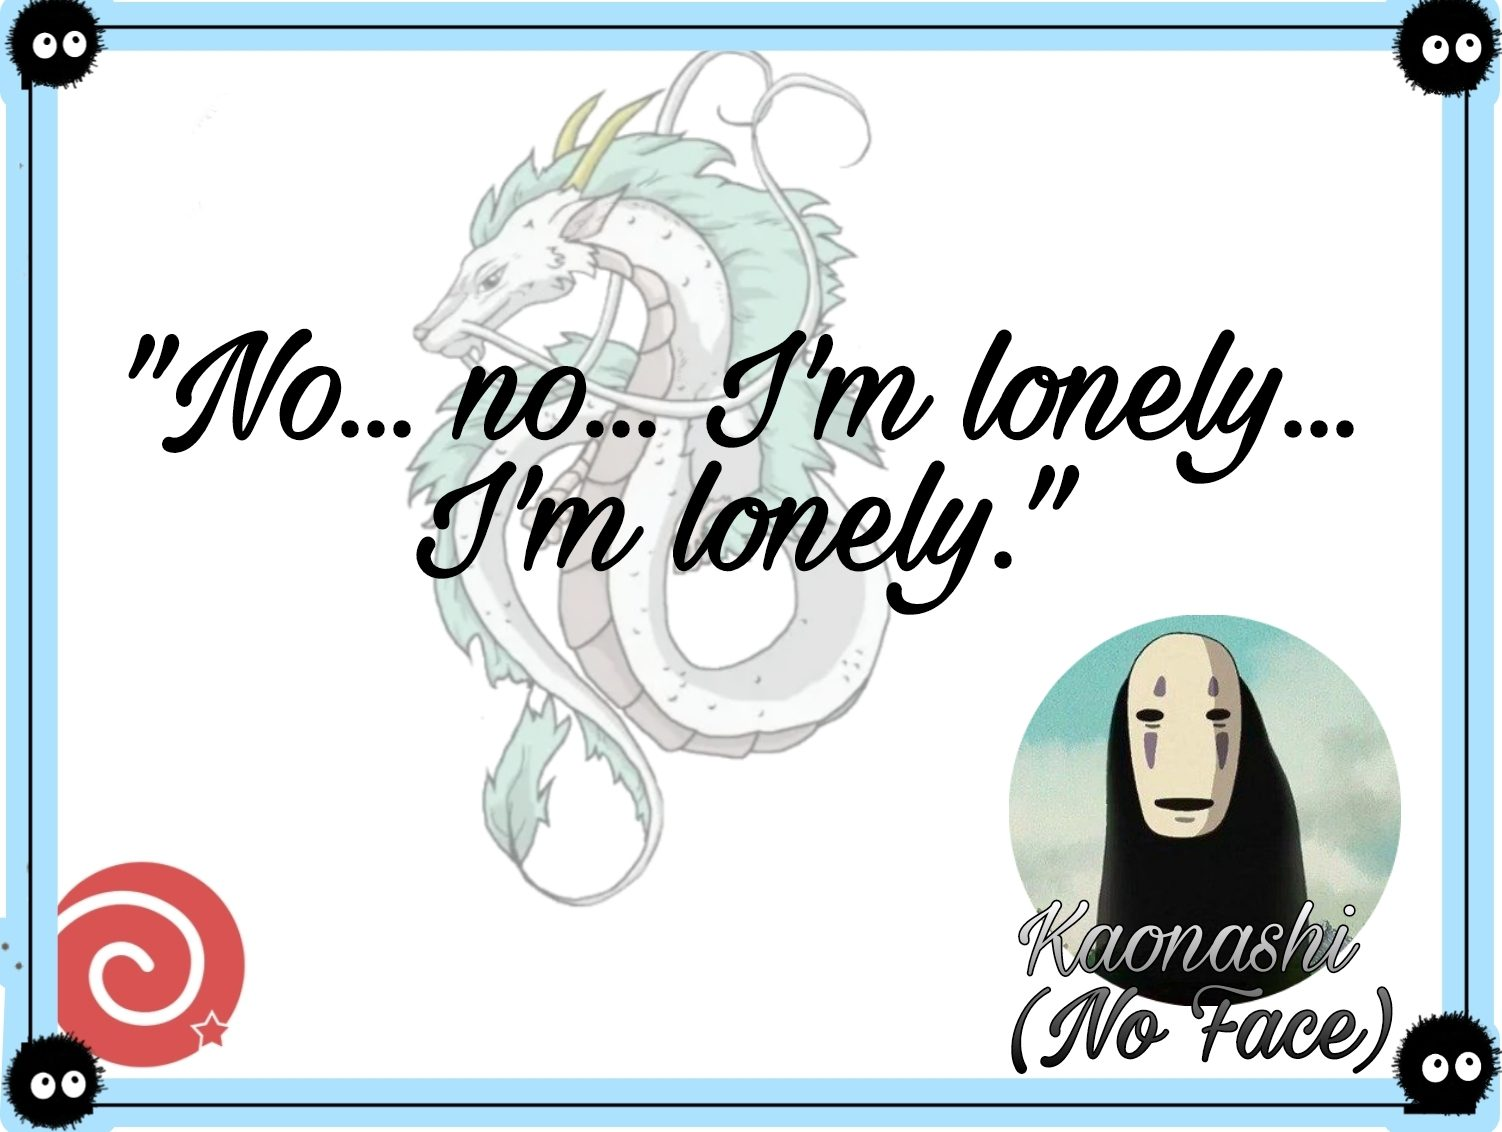 Quotes by no face